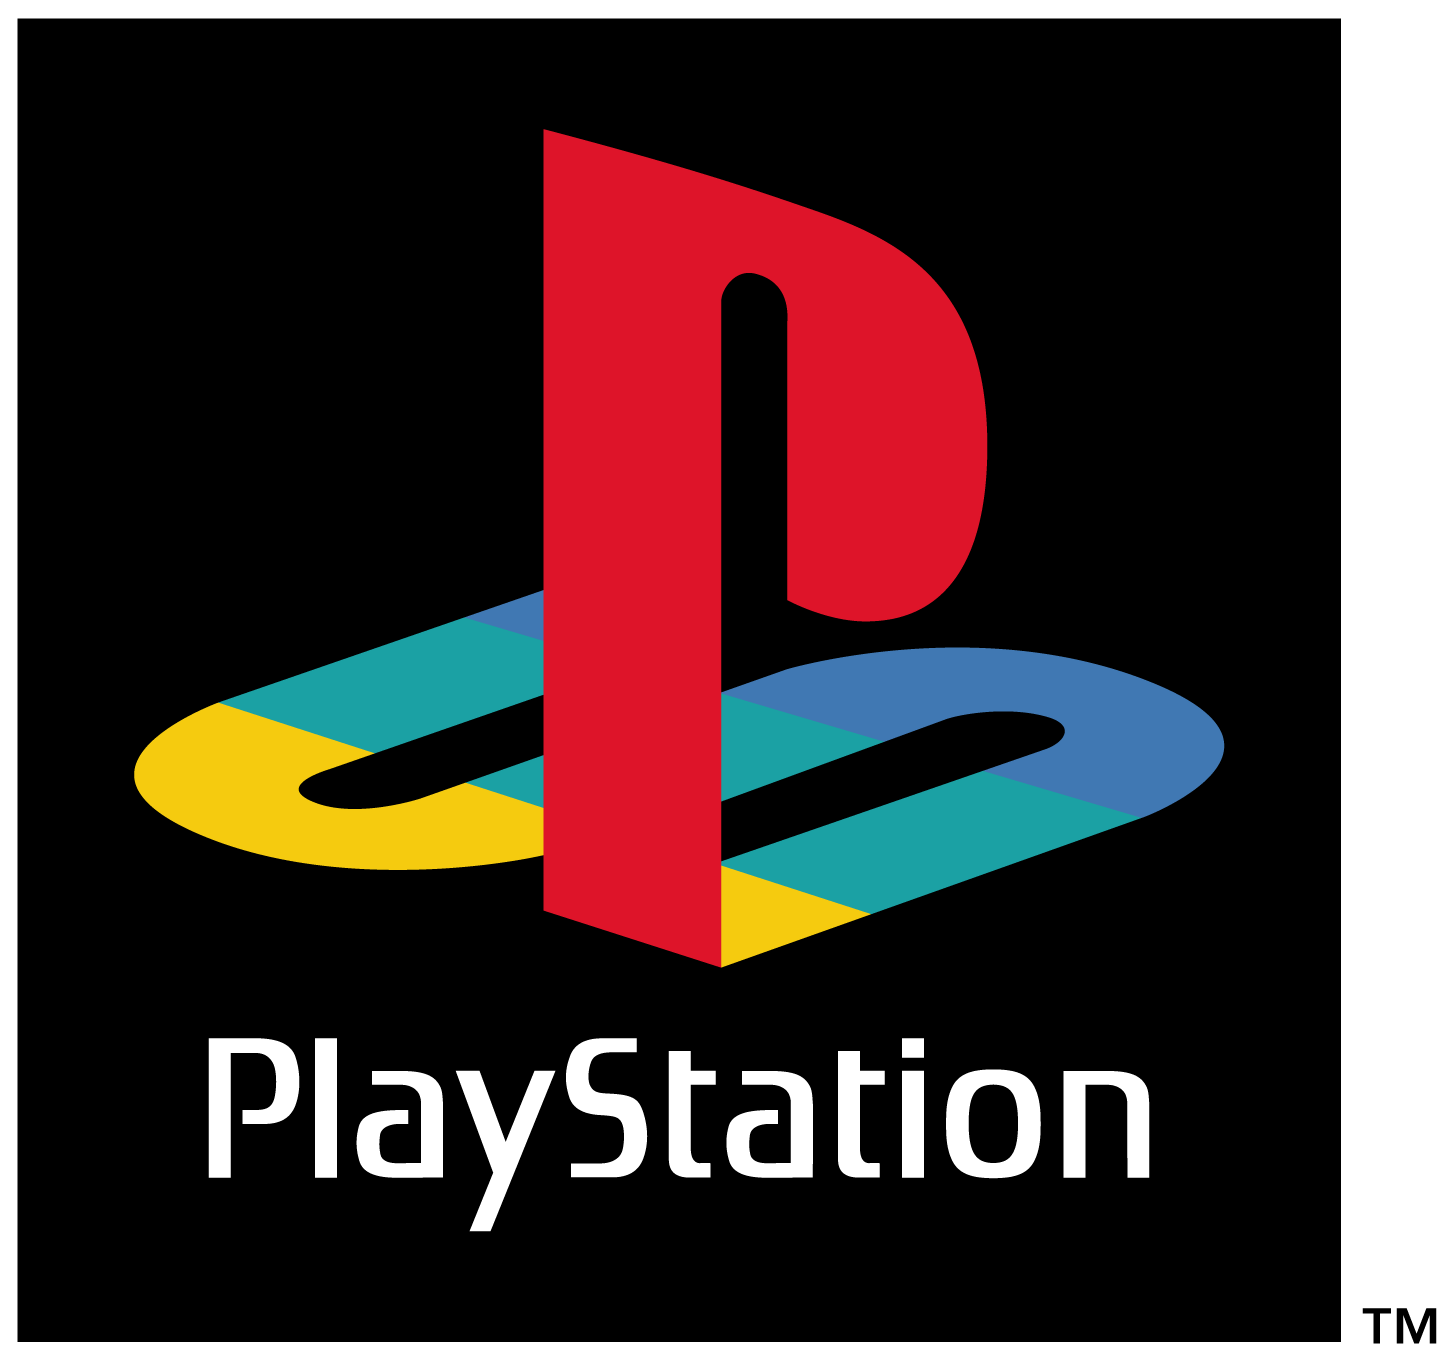 Kerr Logo Playstation This Logo Is Very Creative In The Way That It Is In The Shape Of A P And Suddly Playstation Logo Playstation Consoles Playstation